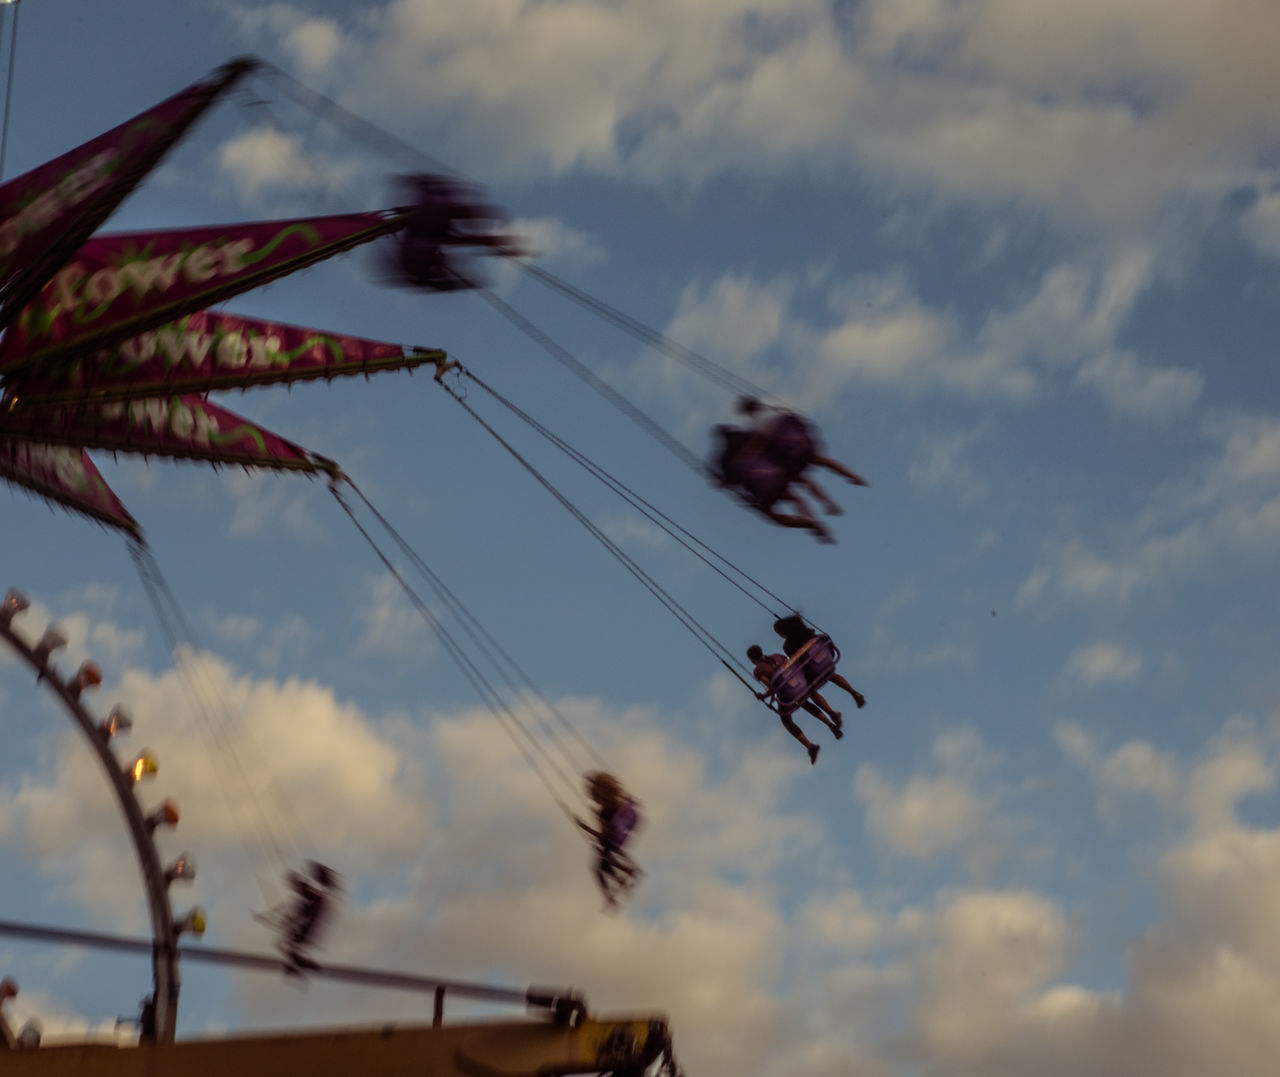 sky, cloud - sky, low angle view, celebration, multi colored, outdoors, teamwork, hanging, day, no people, airshow